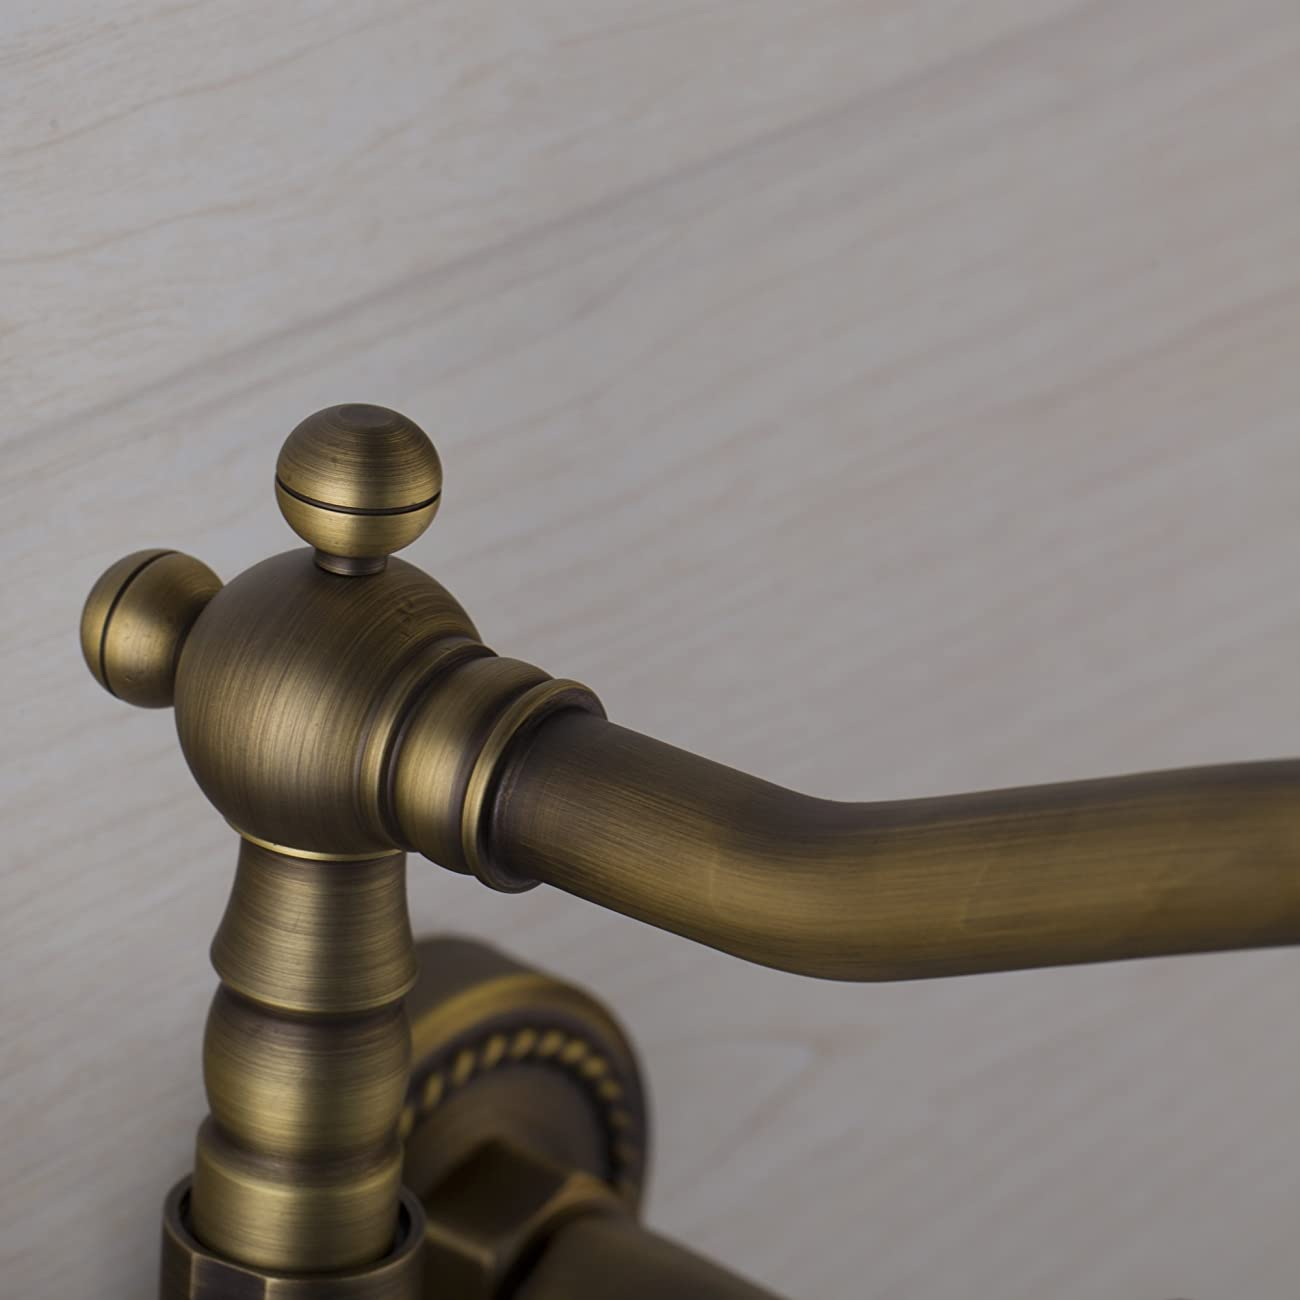 European Style Vintage Wall Mount Kitchen & Bathroom Faucet with Double Cross Handle, Antique Brass Ys65960 3